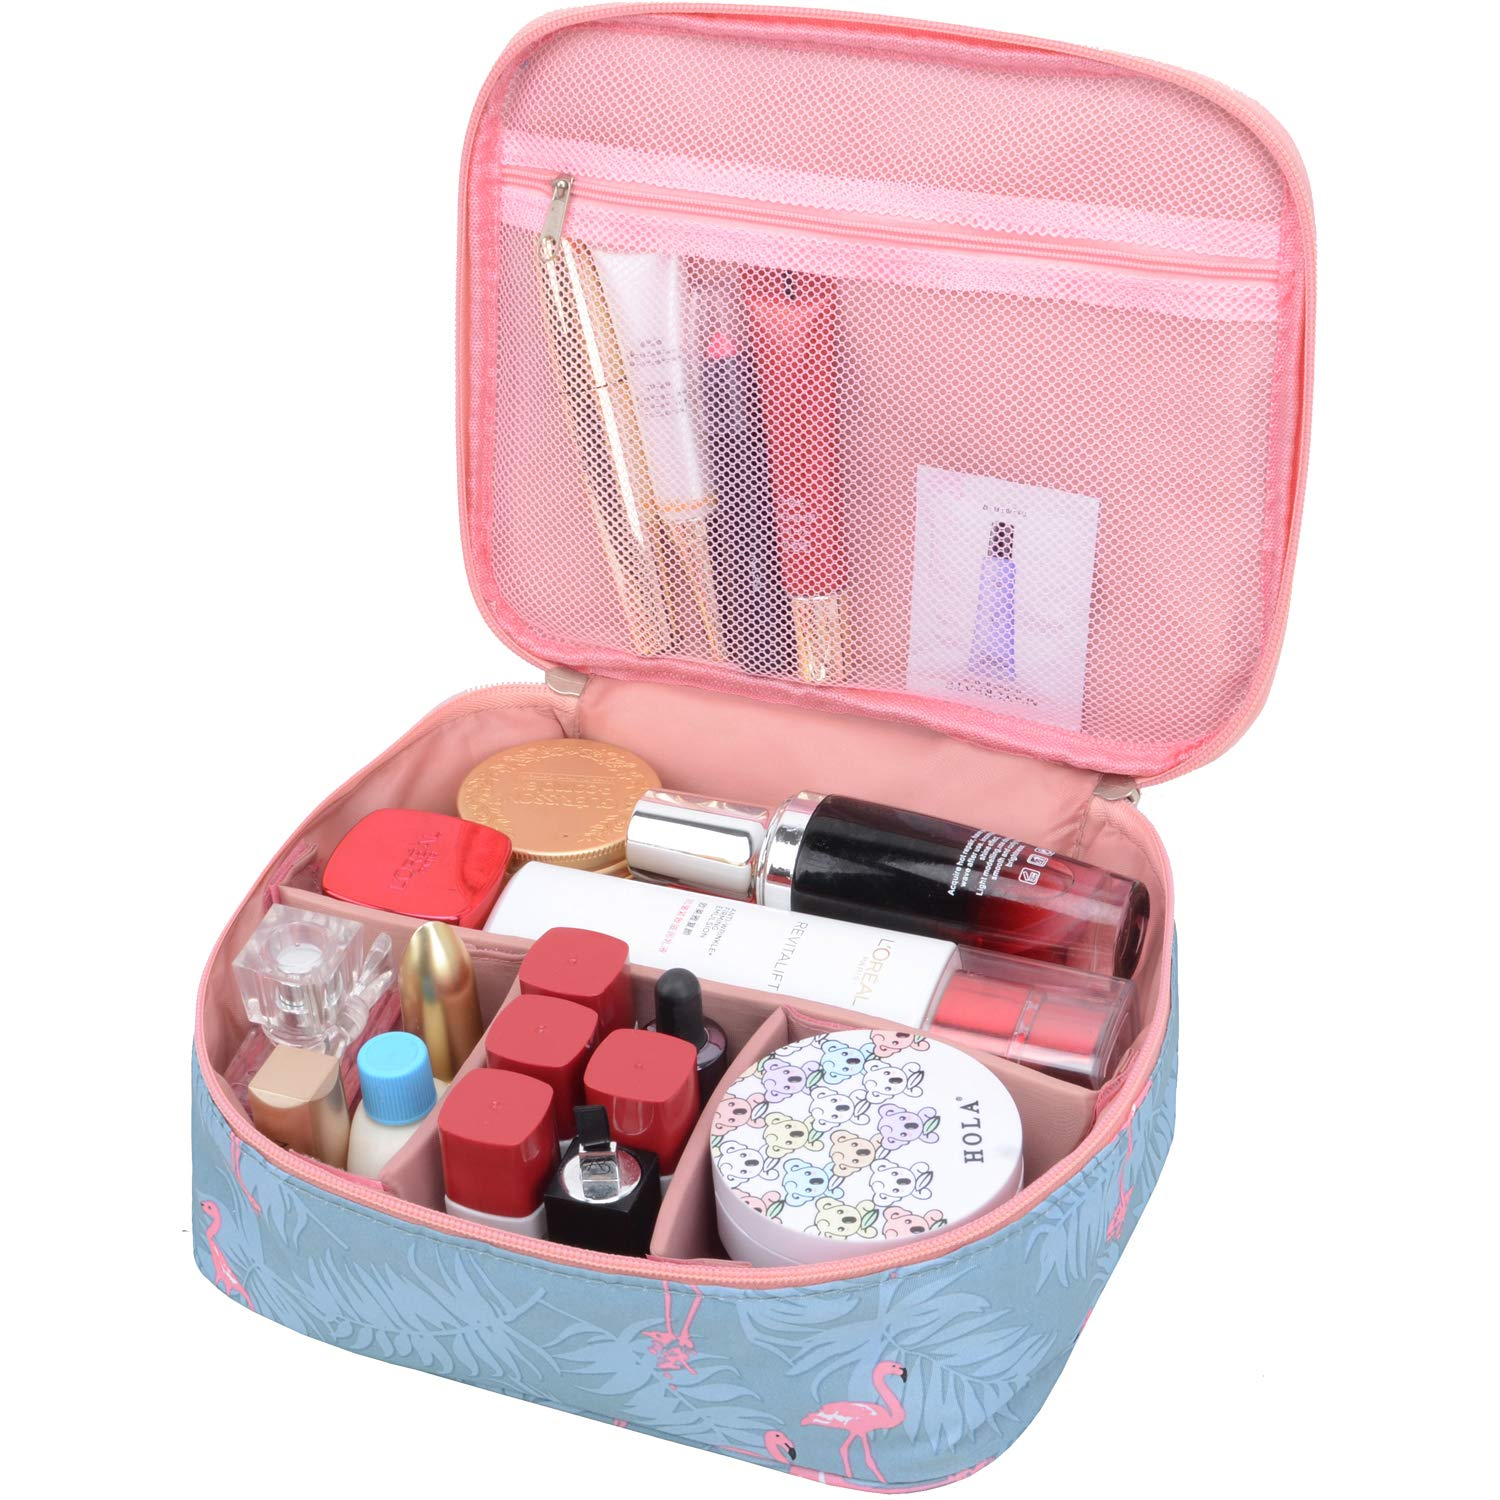 MKPCW Portable Travel Makeup Cosmetic Bags Organizer Multifunction Case for Women (Color1)